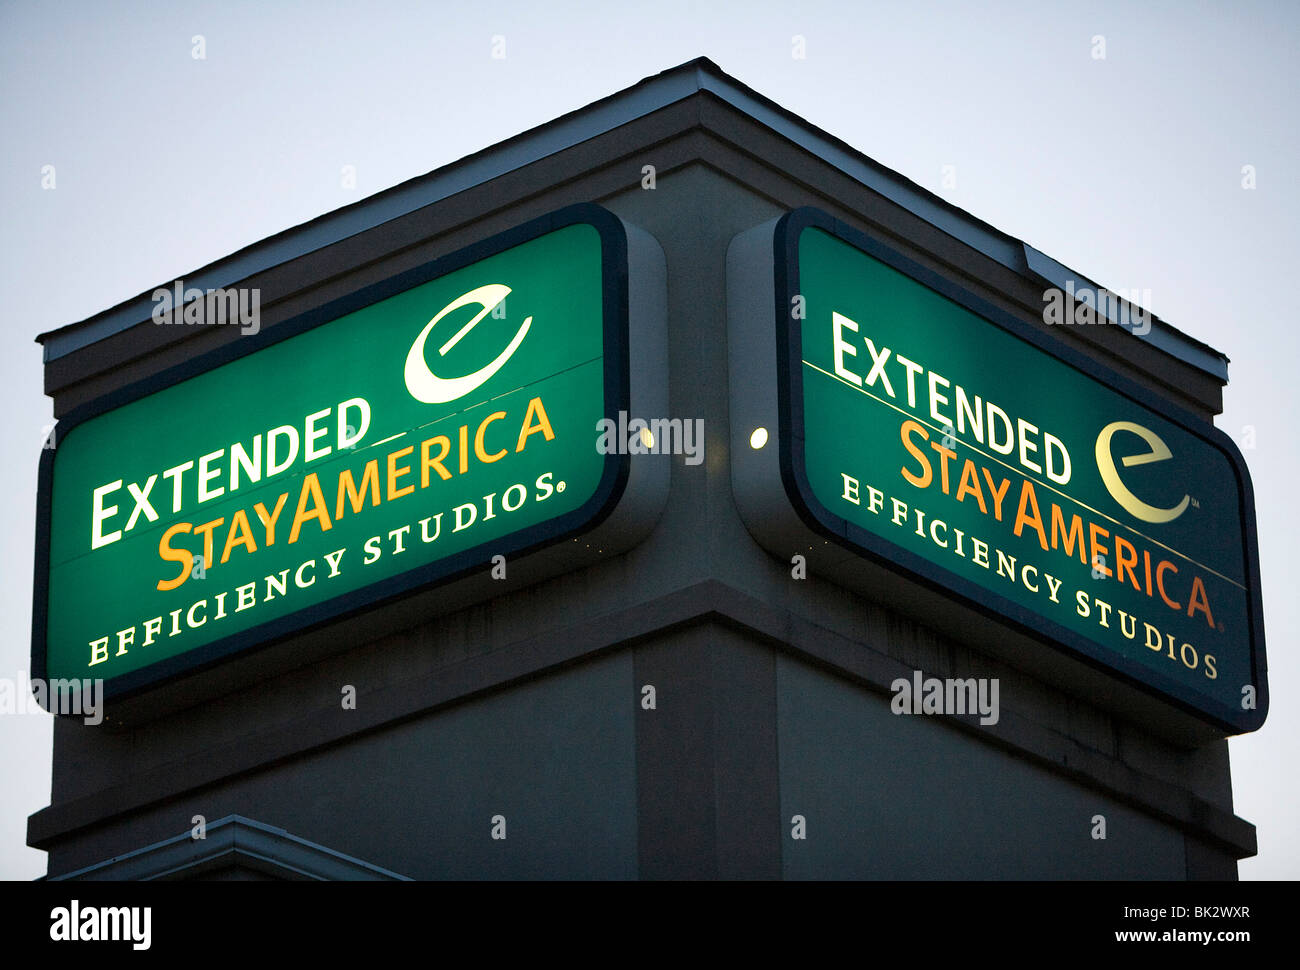 A Extended Stay America hotel location in suburban Maryland.  - Stock Image